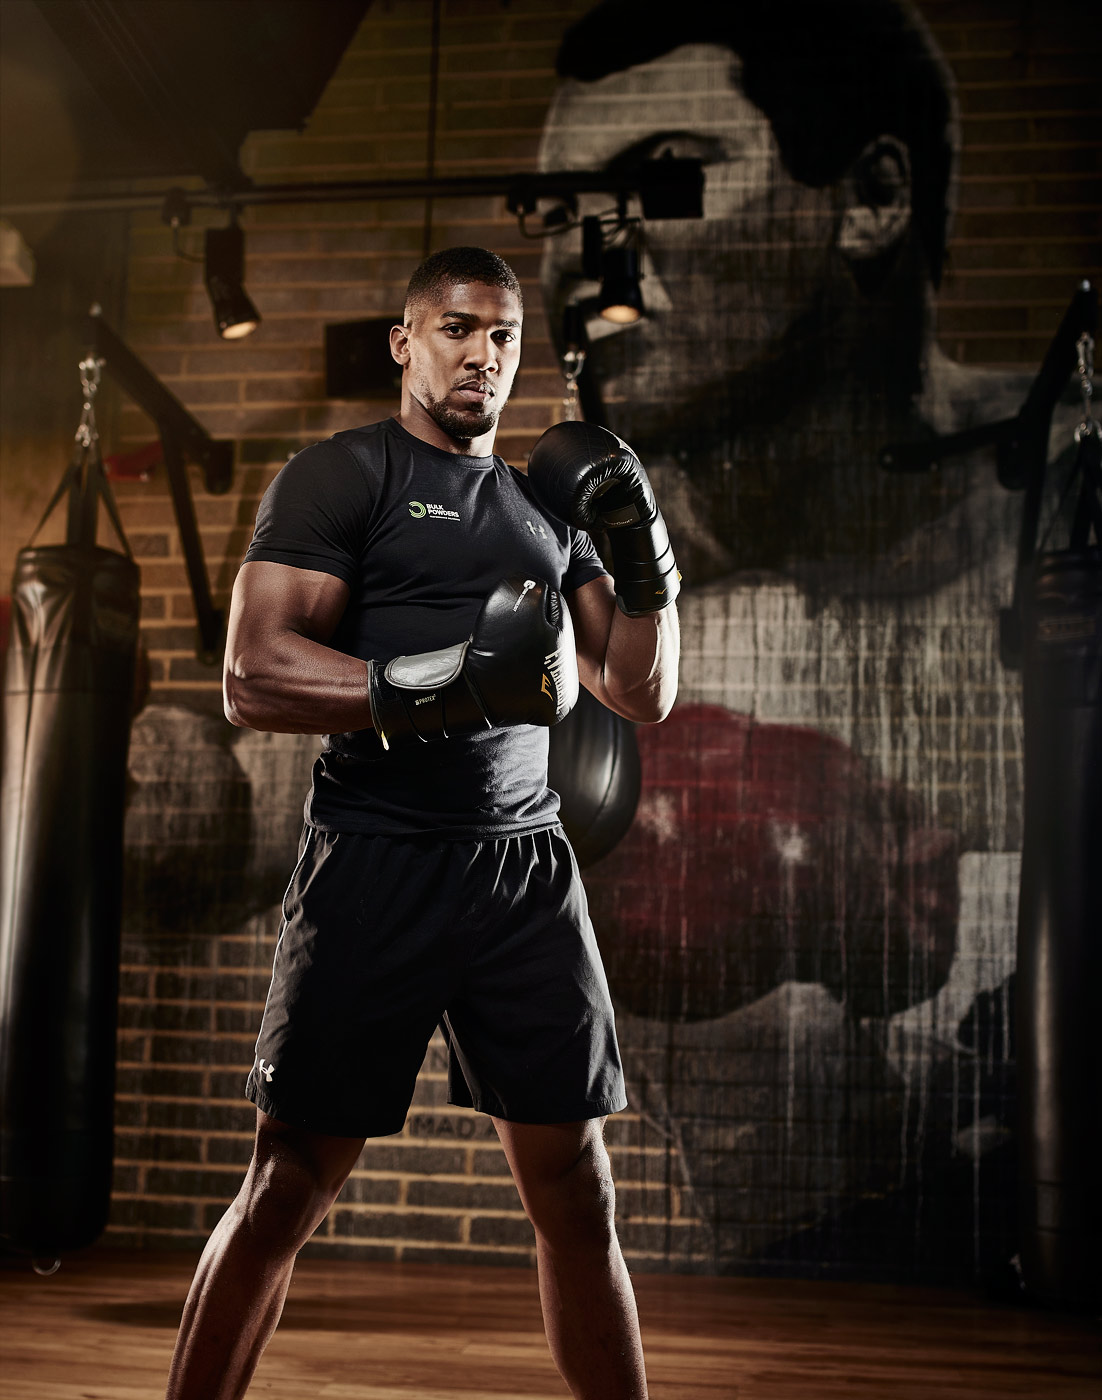 Anthony Joshua with boxing gloves on